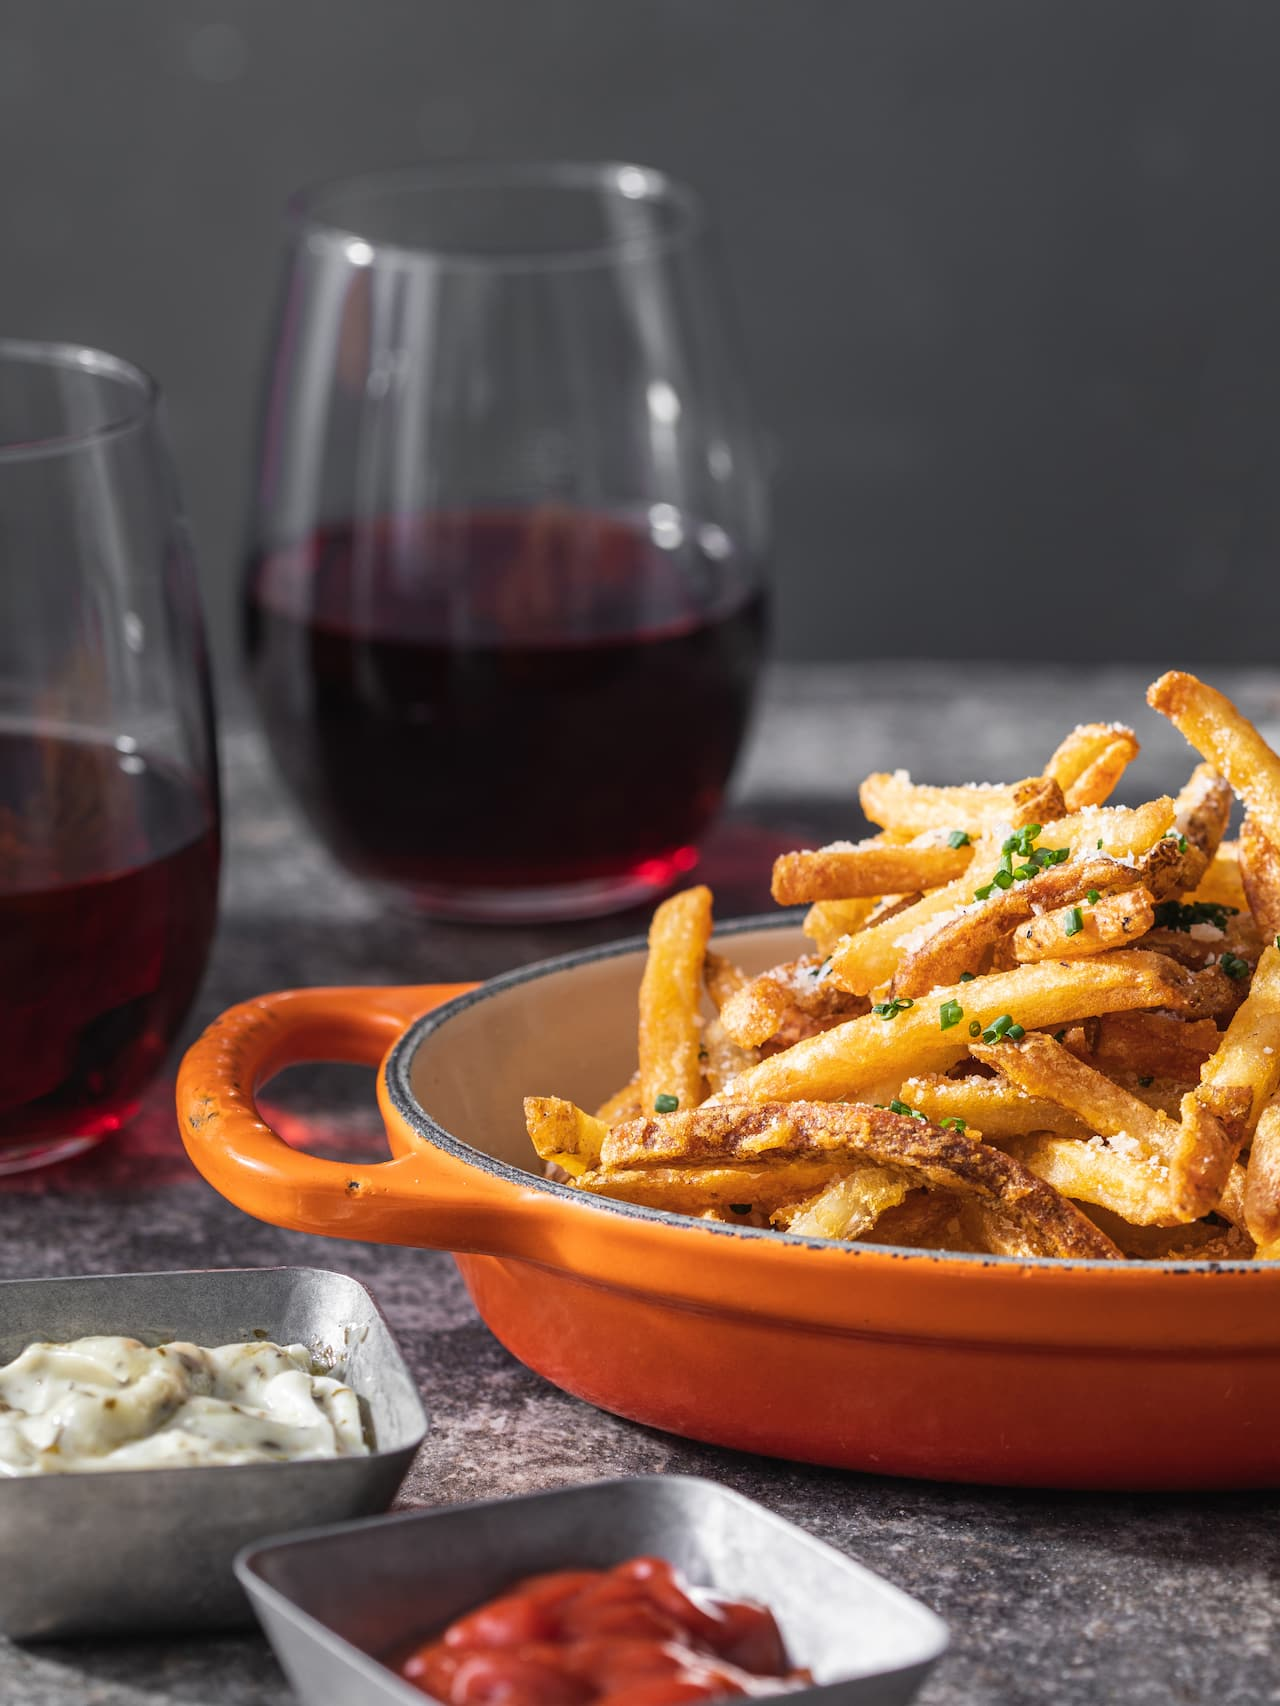 Hyatt Place Fries and Two Red Wines